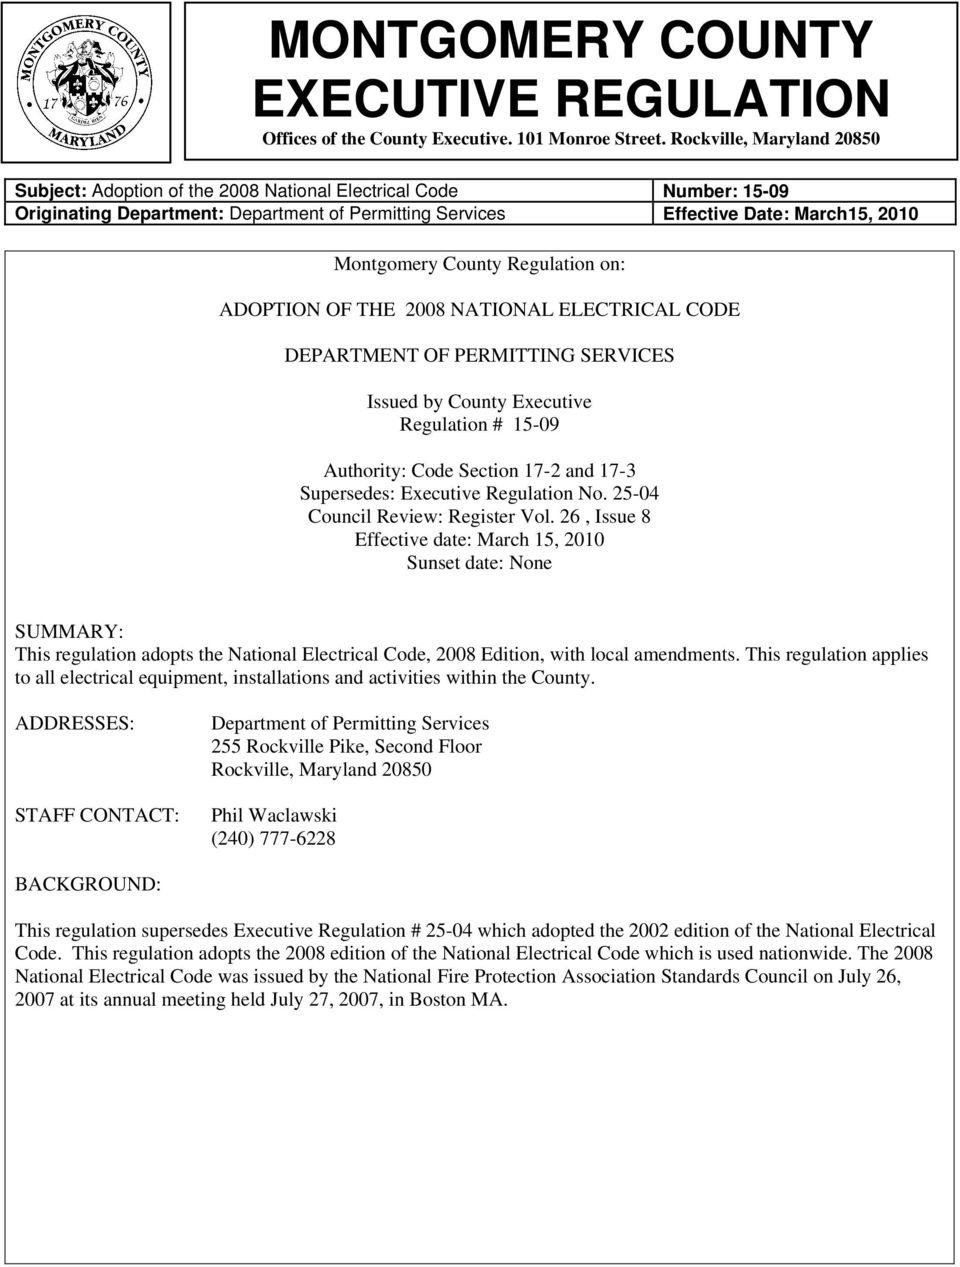 Montgomery County Executive Regulation Offices Of The Rockville Wiring Diagrams 26 Issue 8 Effective Date March 15 2010 Sunset None Summary